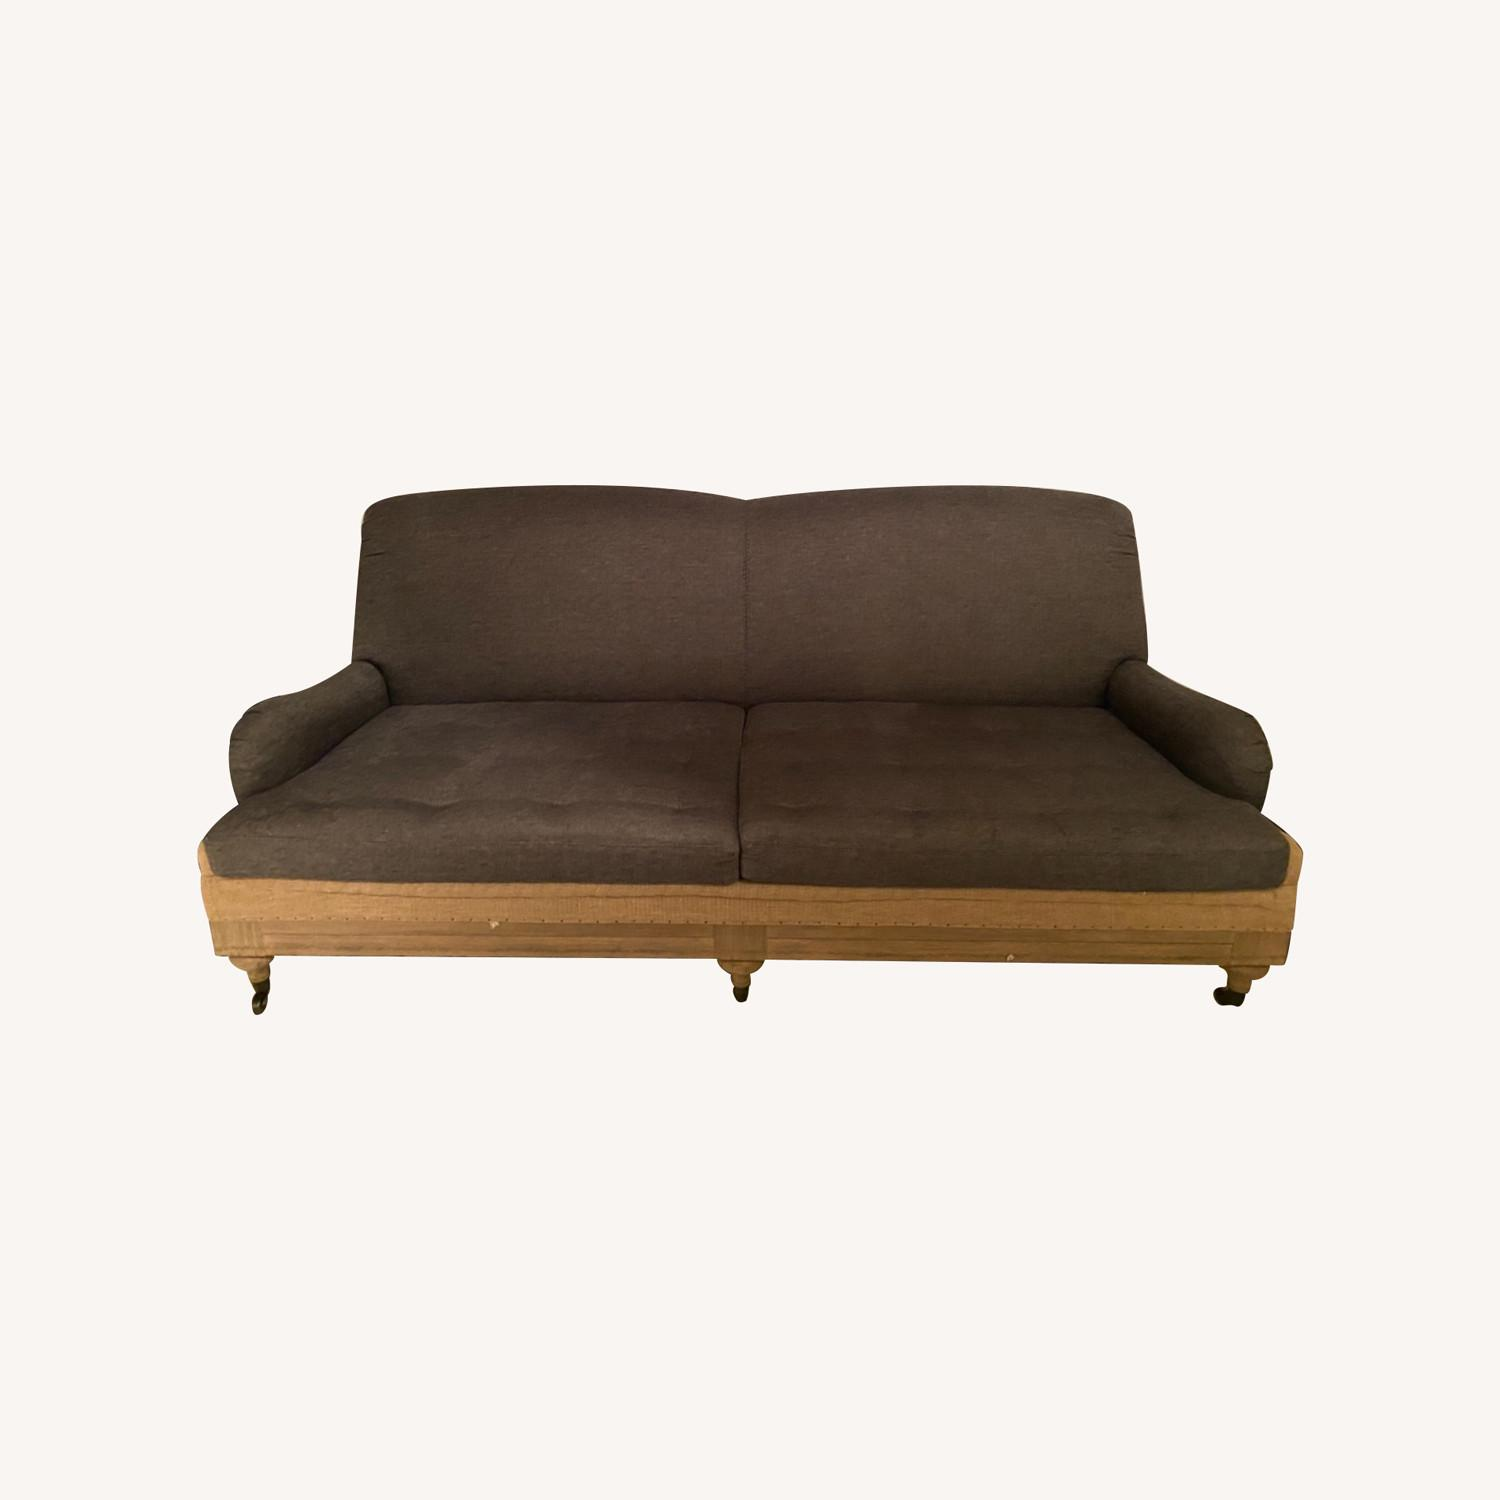 Restoration Hardware Deconstructed Sofa - image-6